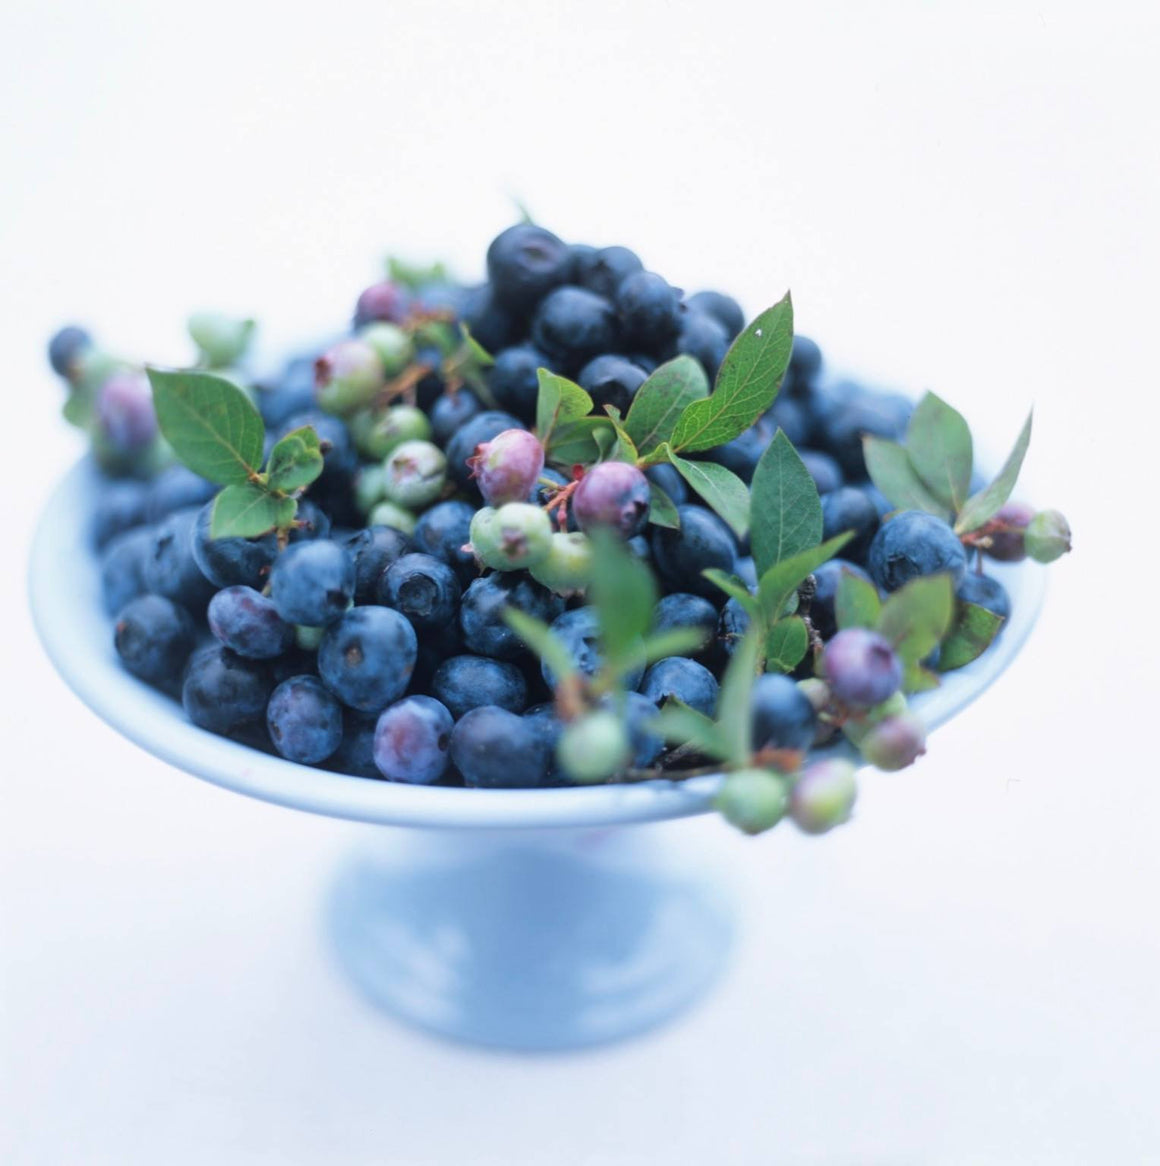 Blueberries - David Loftus Print Shop